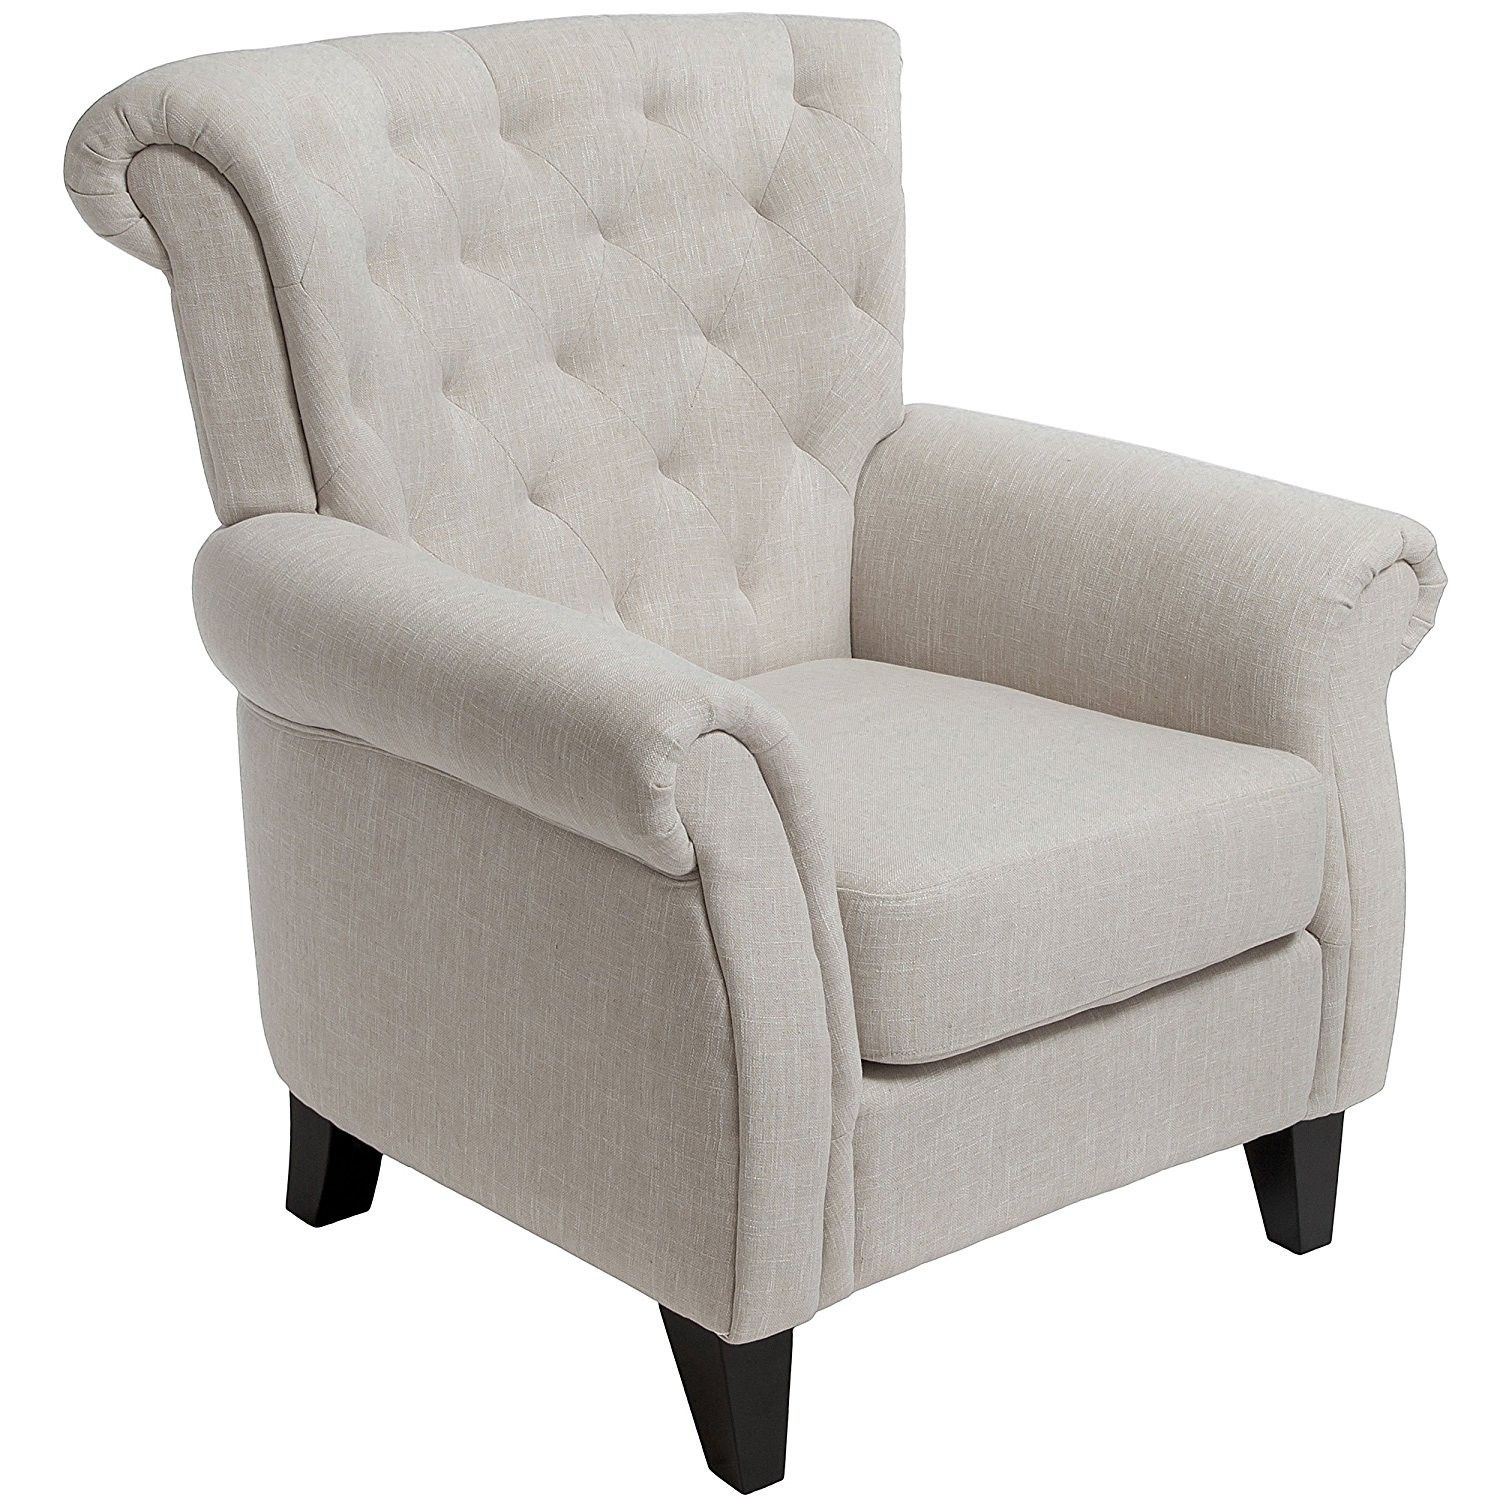 Arm Chair Small Bedroom Chairs Ikea Small Accent Chair With Ottoman Cute Accent Chair Small Chair For Bedroom Comfortable Chairs For Bedroom Tufted Club Chairs